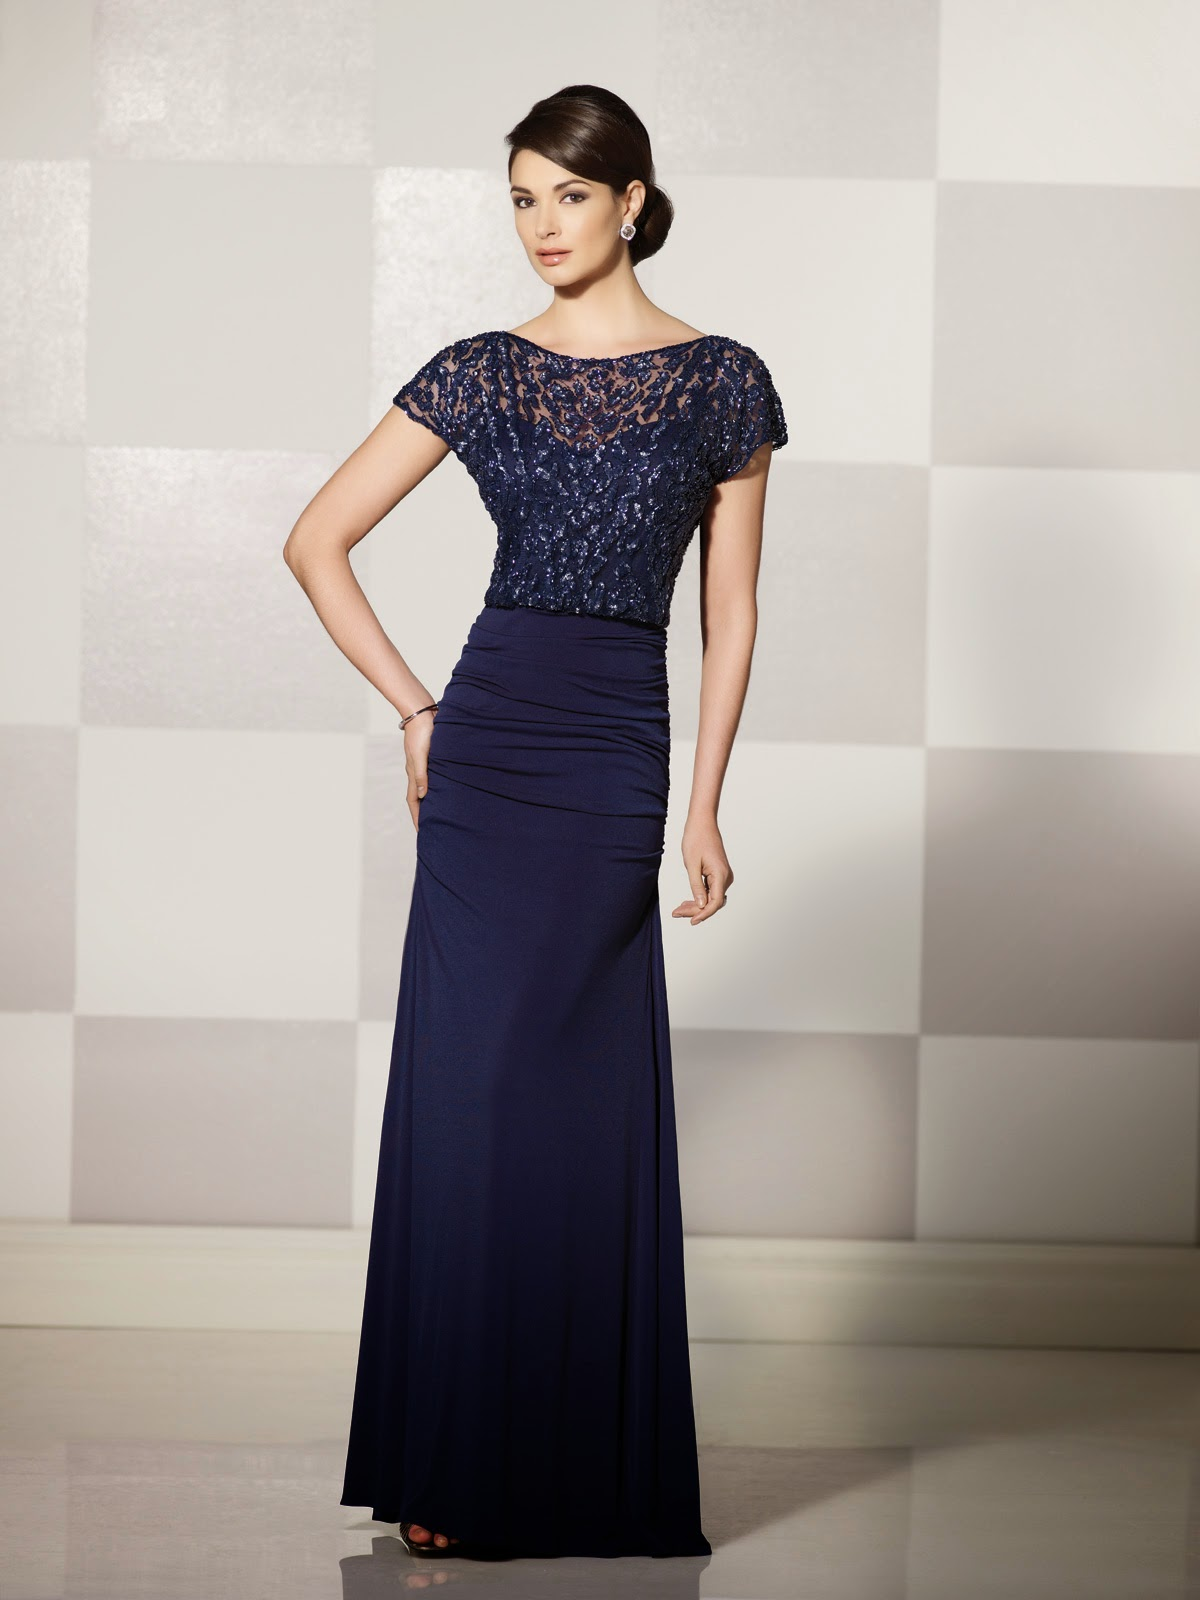 Mother Of Bride Dresses Fall 2014 A line gown along with